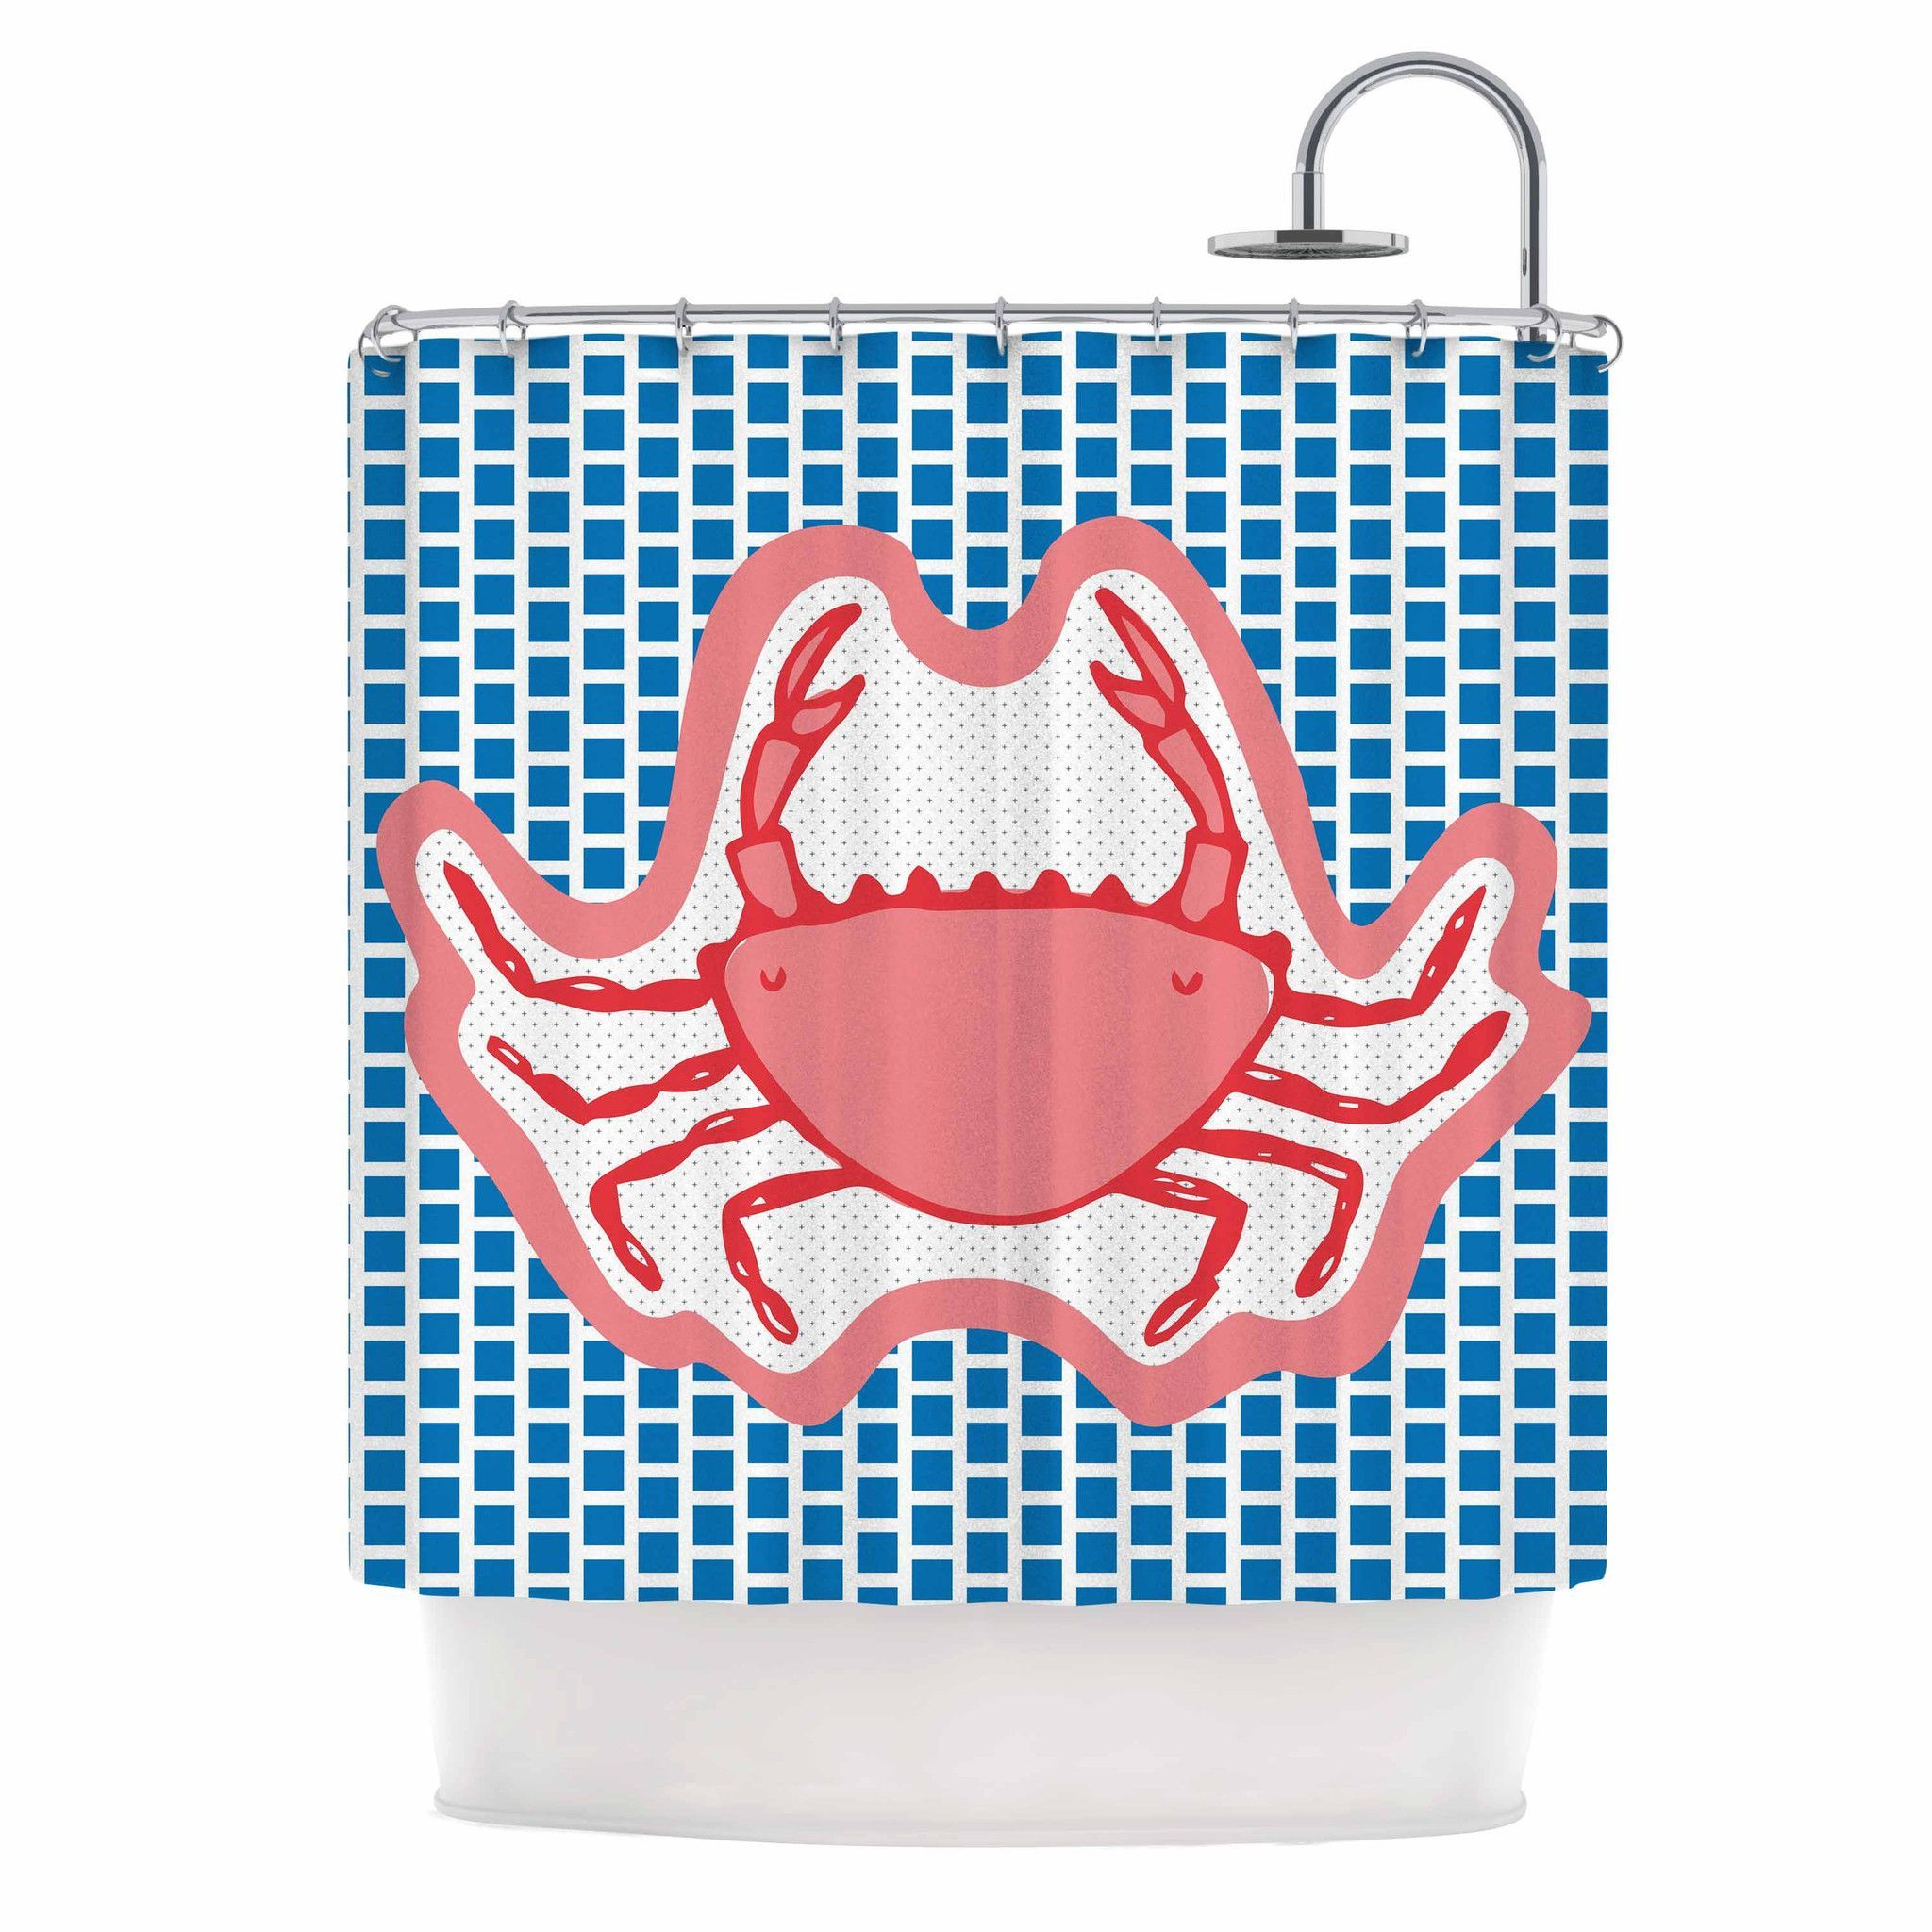 MaJoBV Cangrejo Red Crab Shower Curtain